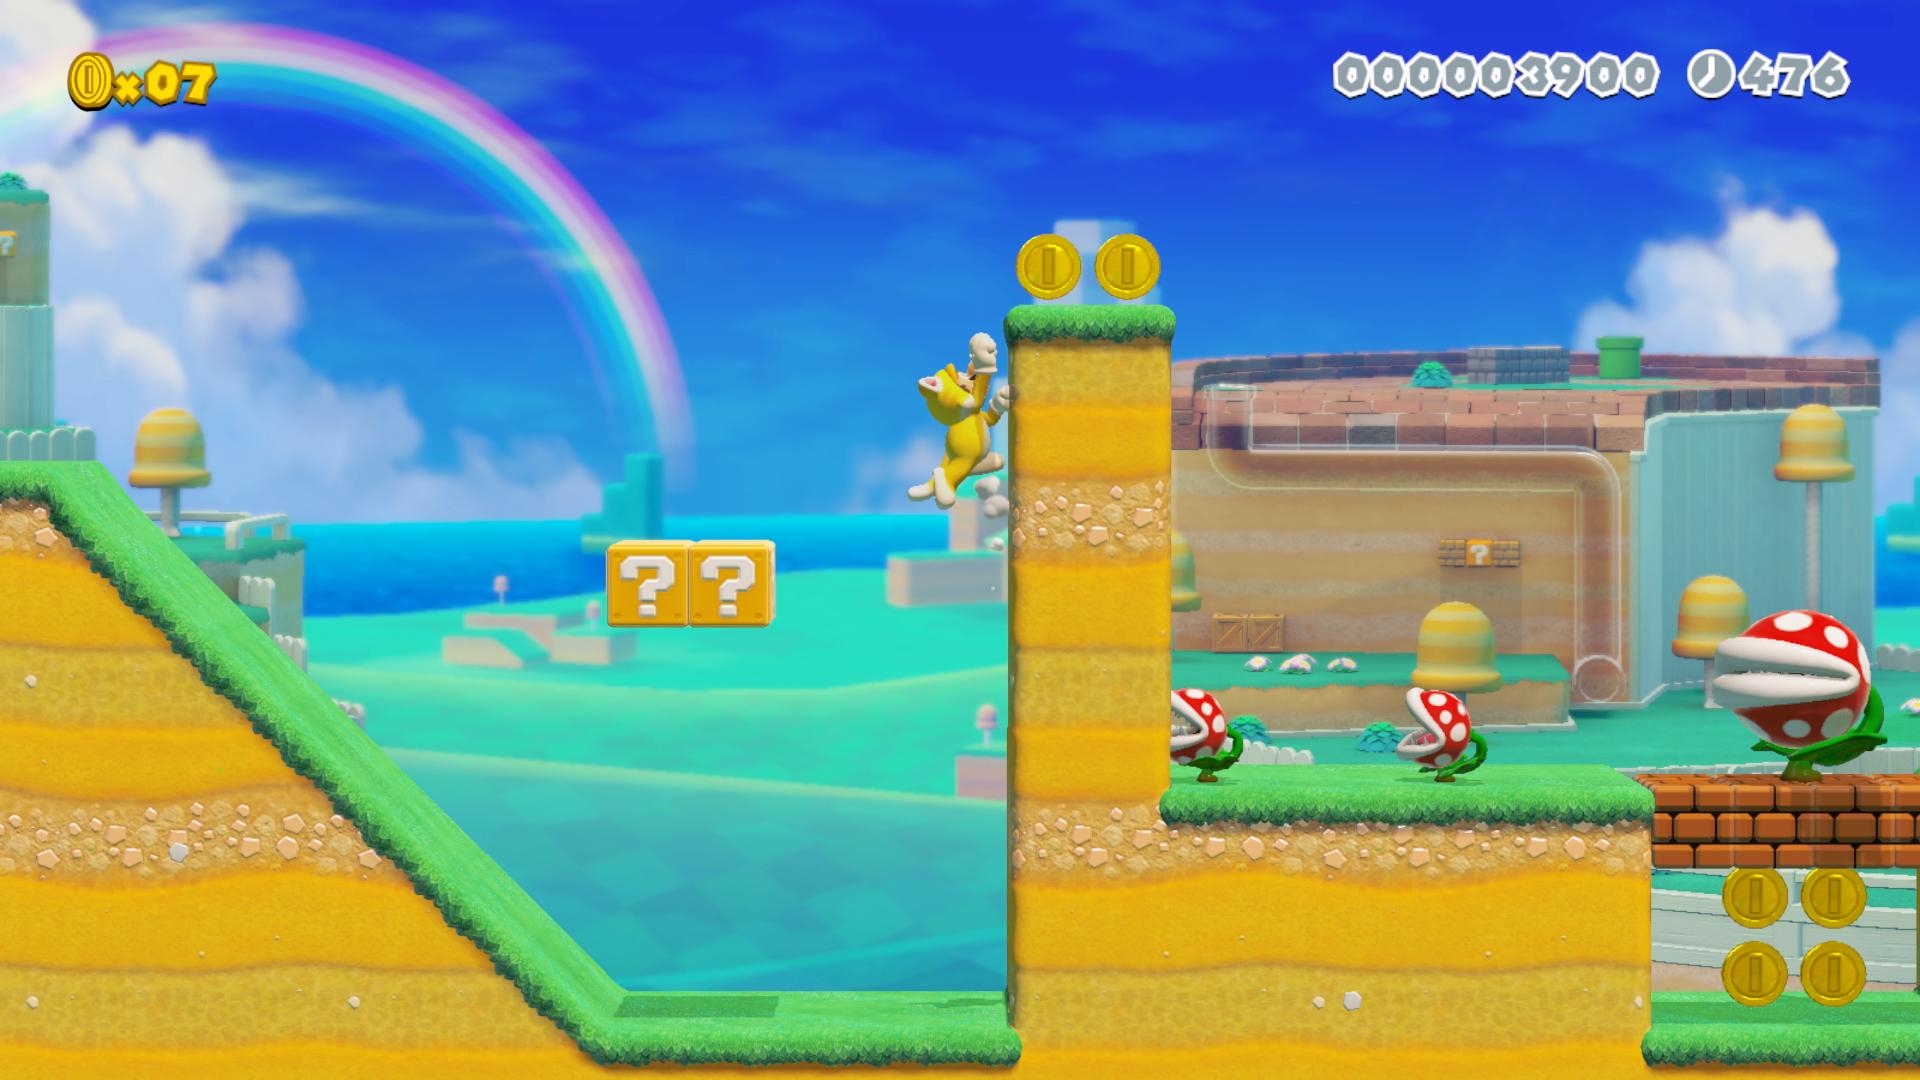 Mario Maker 2 adds story mode, online multiplayer | VGC